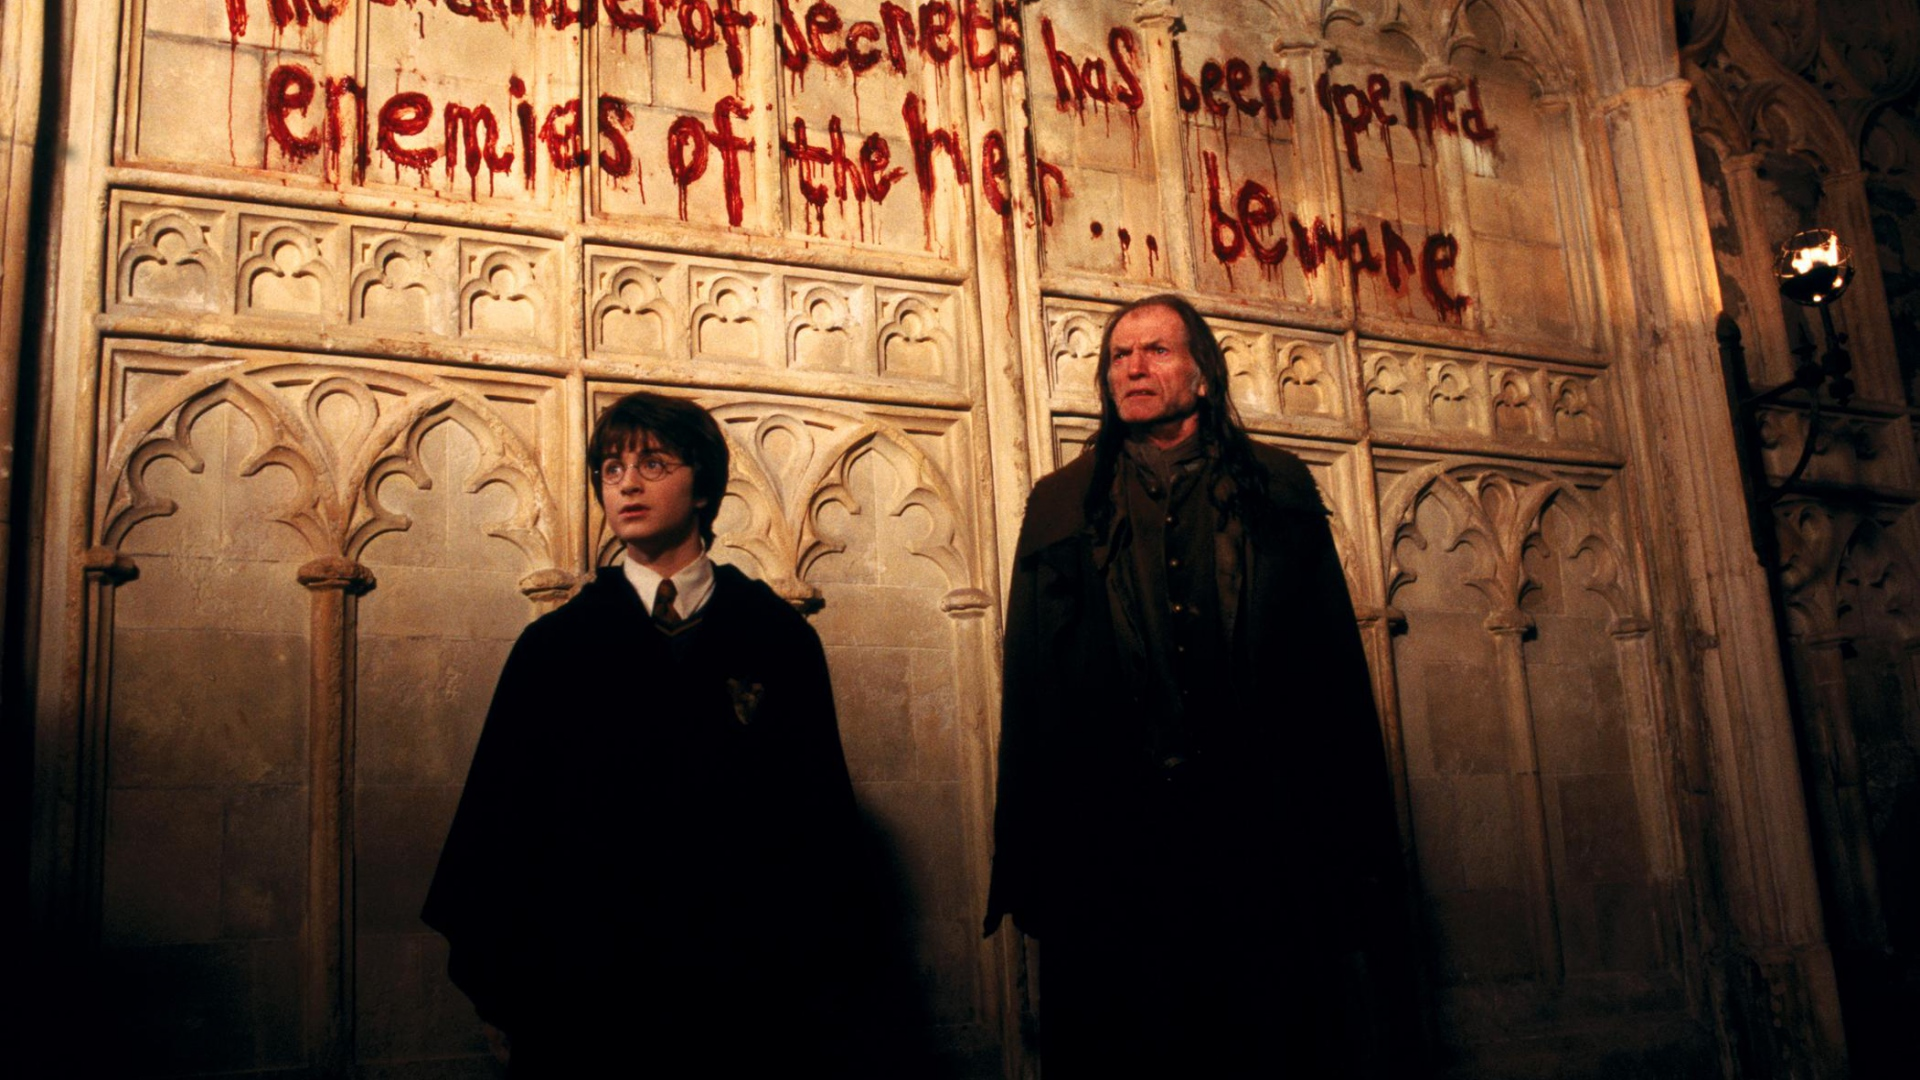 Wallpaper Harry Potter And The Chamber Of Secrets Hogwarts - Harry Potter Chamber Of Secrets Writing - HD Wallpaper